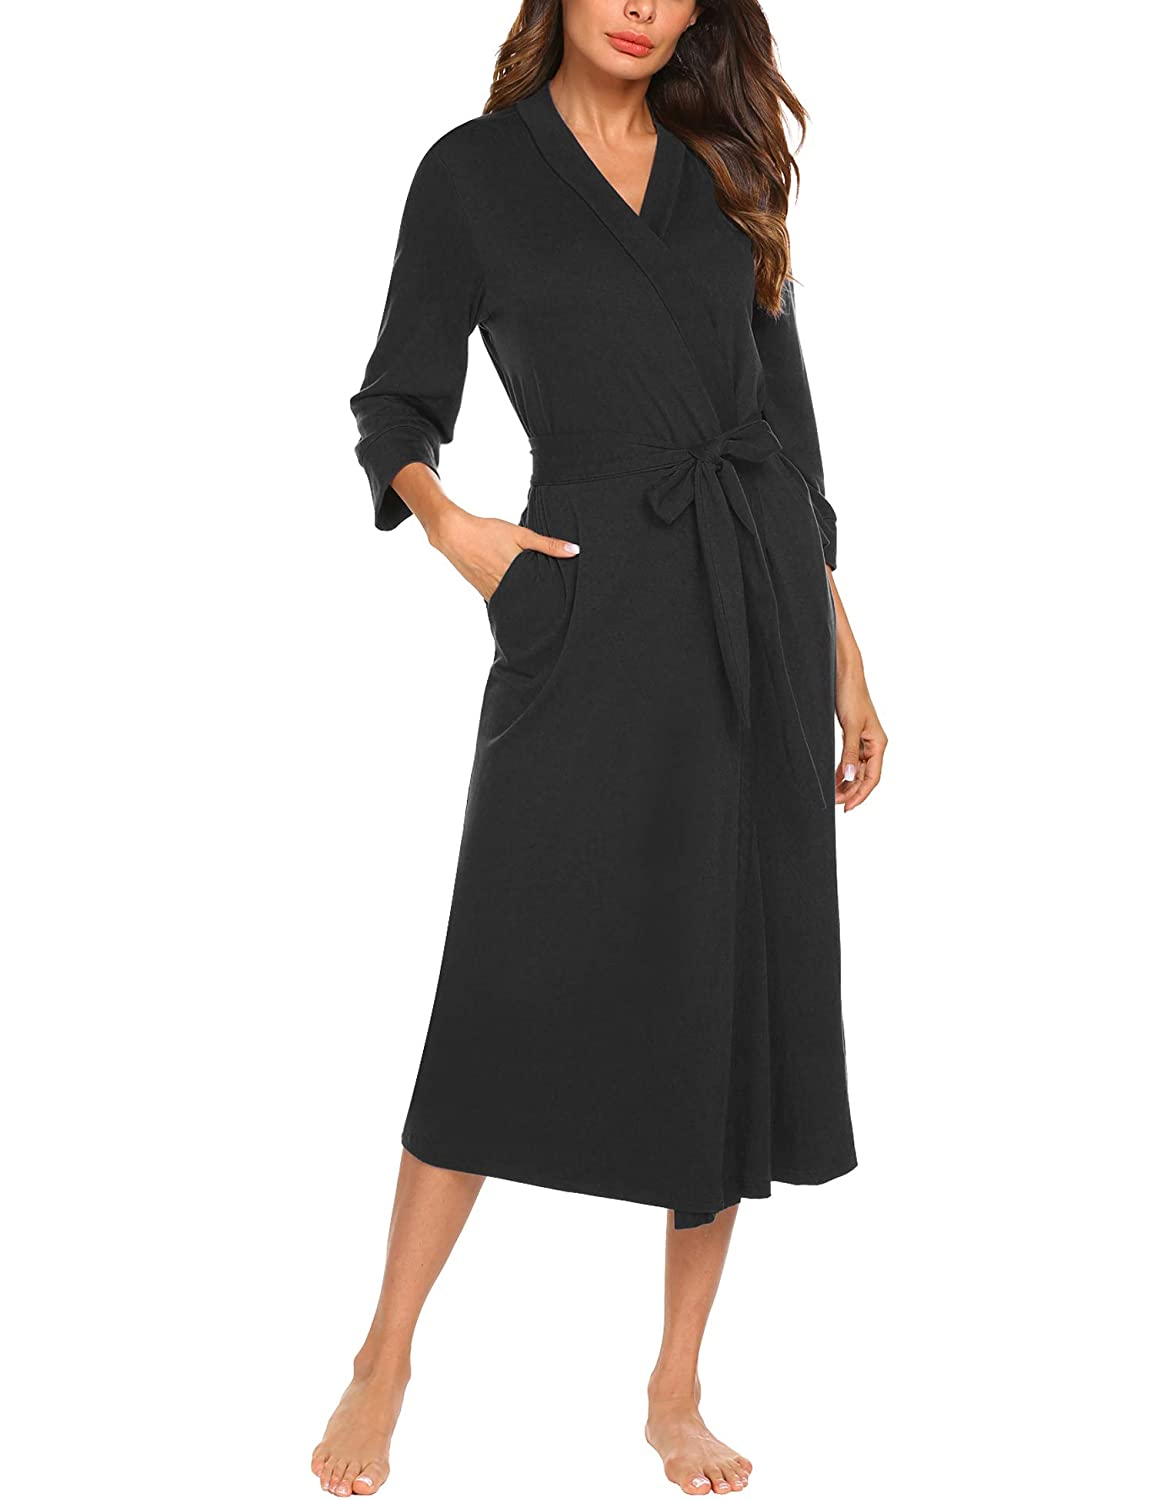 MAXMODA SLEEPWEAR B07G541P7V レディース B07G541P7V X-Large|Long-black X-Large|Long-black Long-black MAXMODA X-Large, ロックピンのMATSUO:6c090733 --- pktm.stiq.com.my